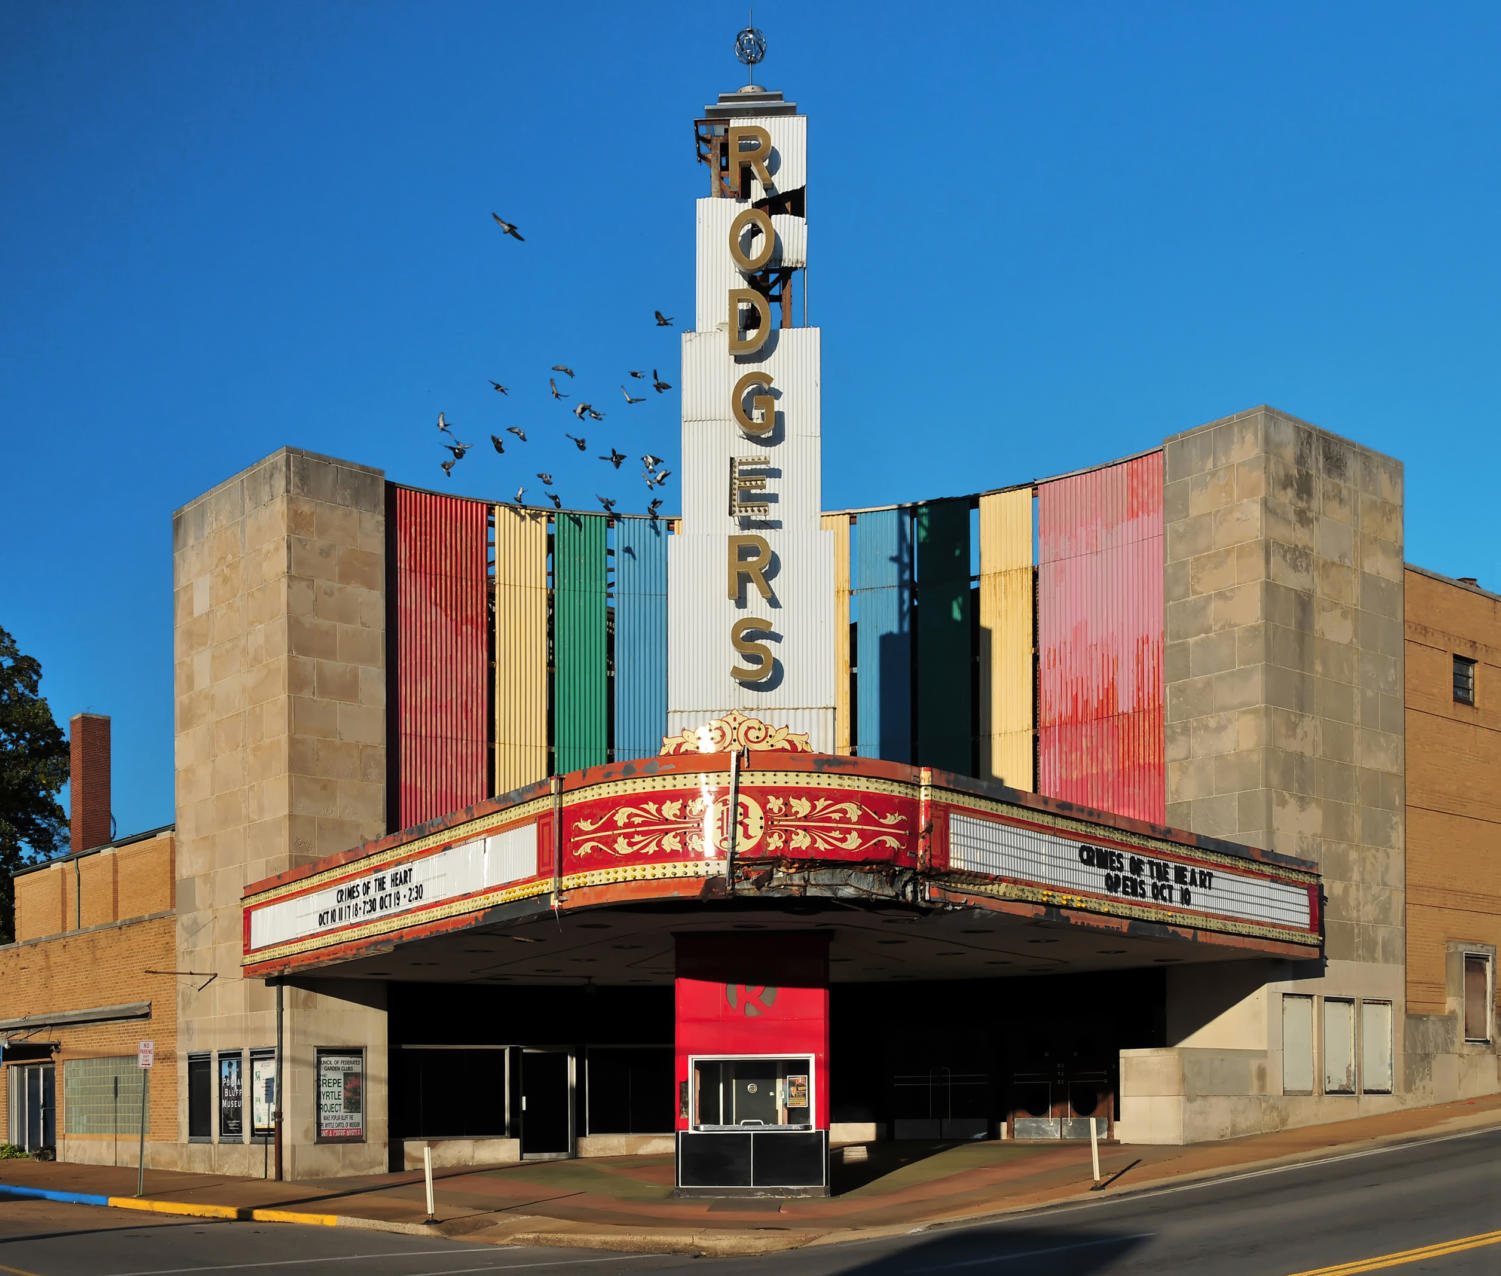 Rodgers Theater in Missouri